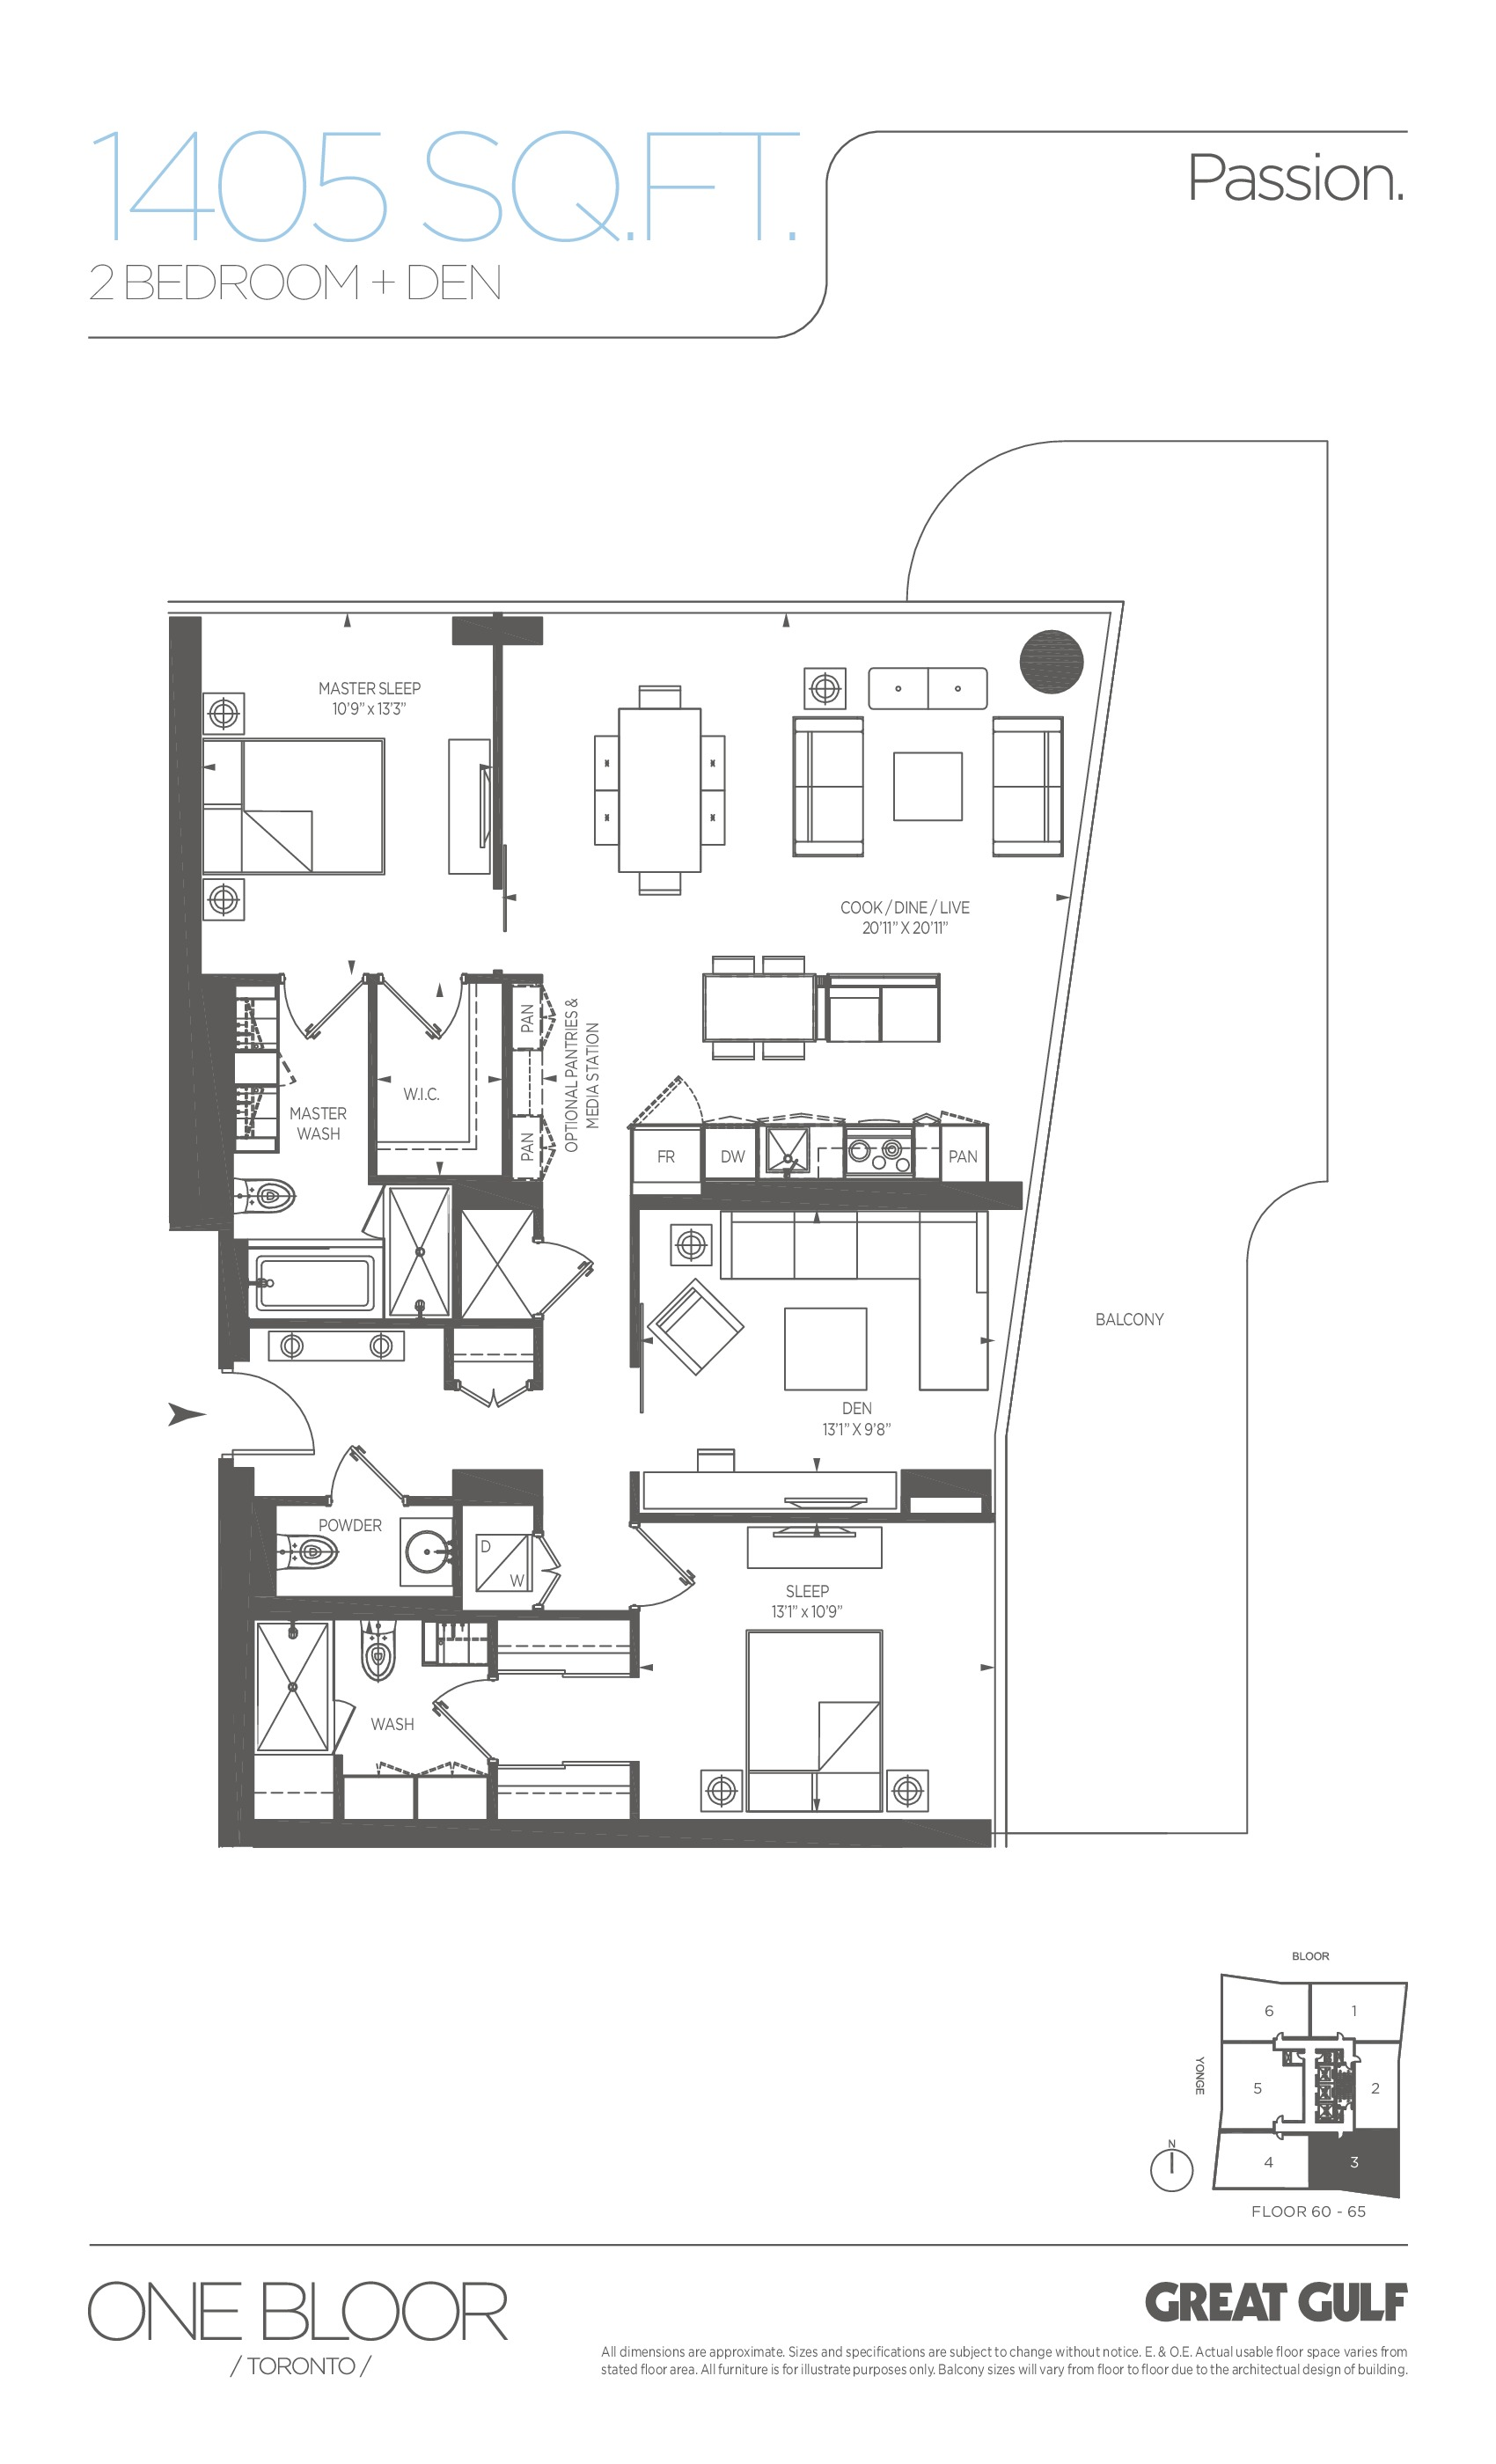 Passion Floor Plan at One Bloor Condos - 1405 sq.ft